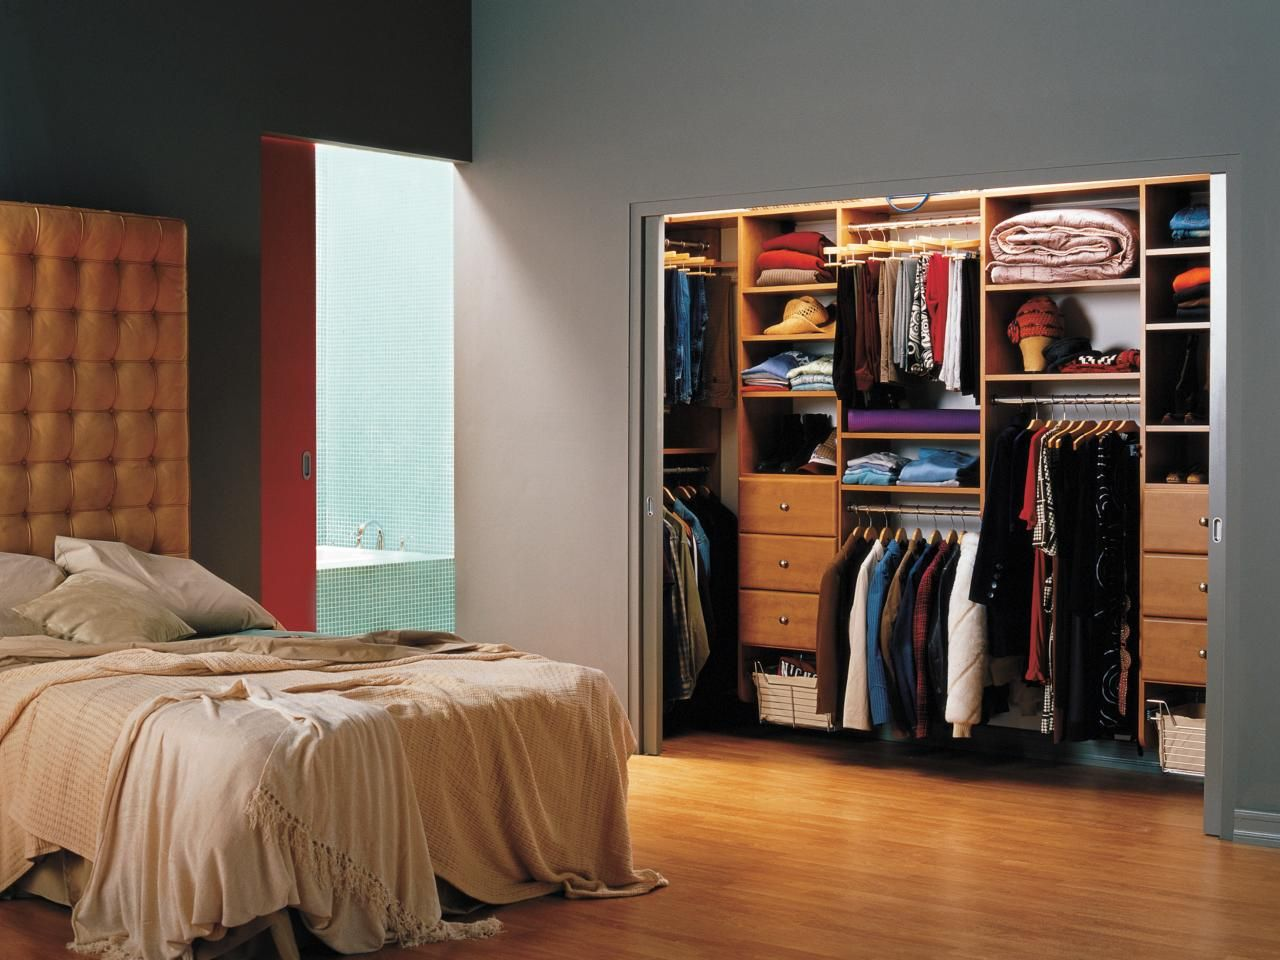 Small Bedroom Closet Design Ideas Fair Small Closet Organization Ideas Pictures Options & Tips Inspiration